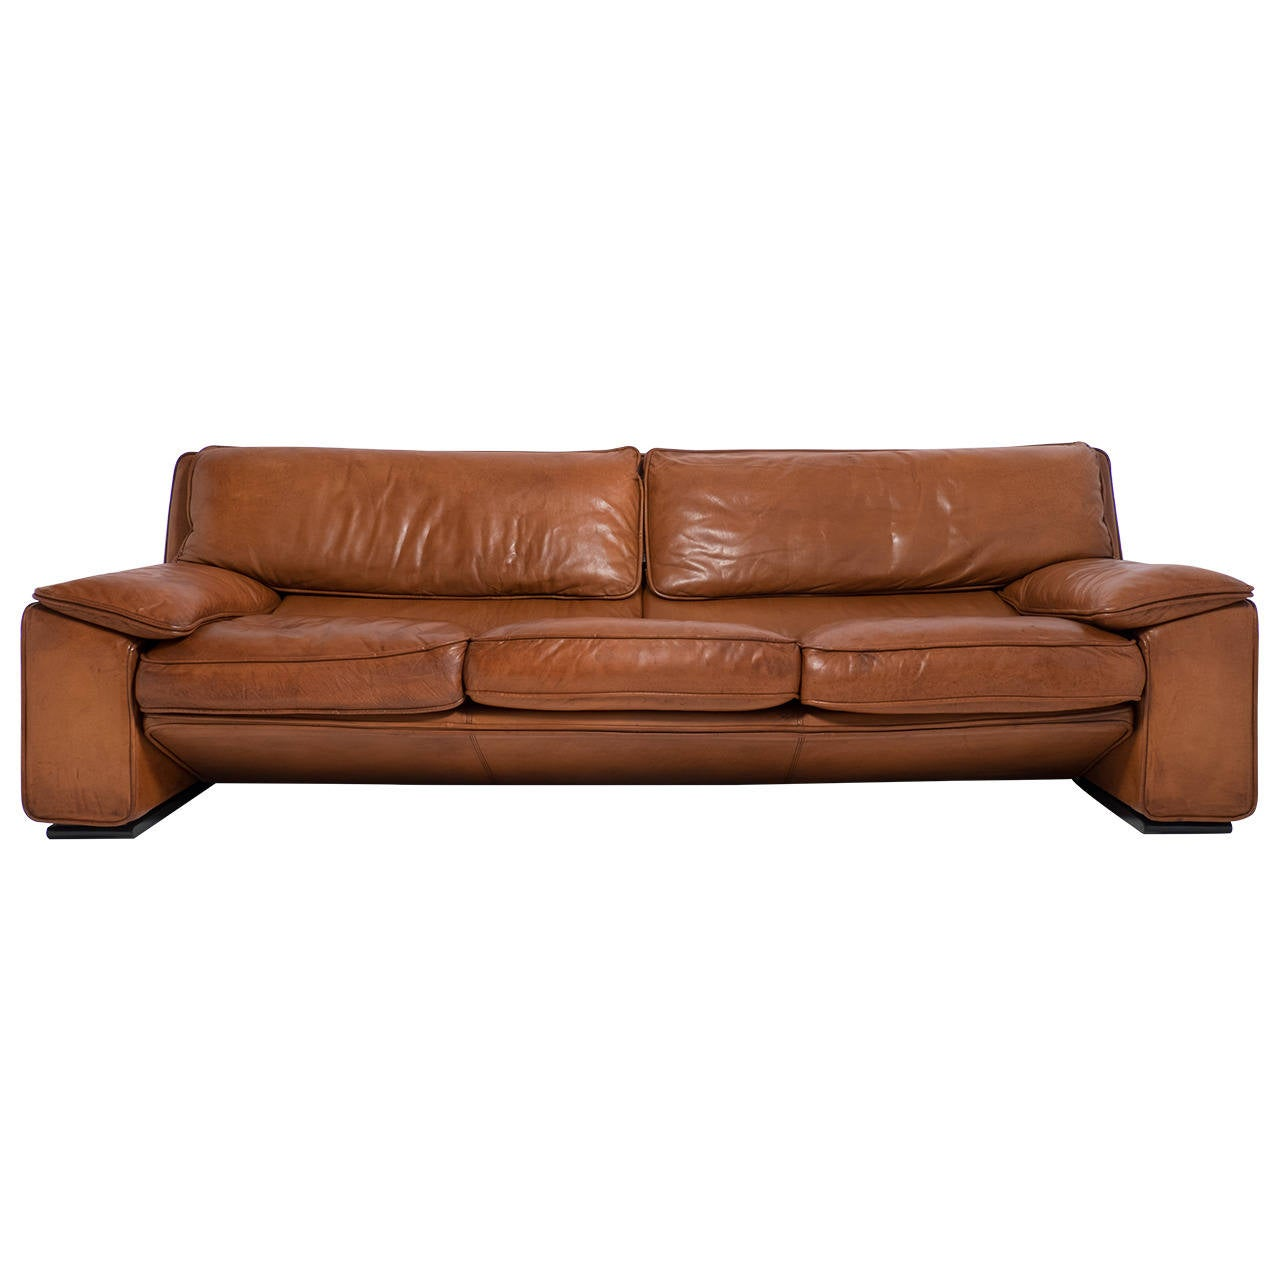 superb italian vintage leather sofa by ferrucio brunati at 1stdibs. Black Bedroom Furniture Sets. Home Design Ideas